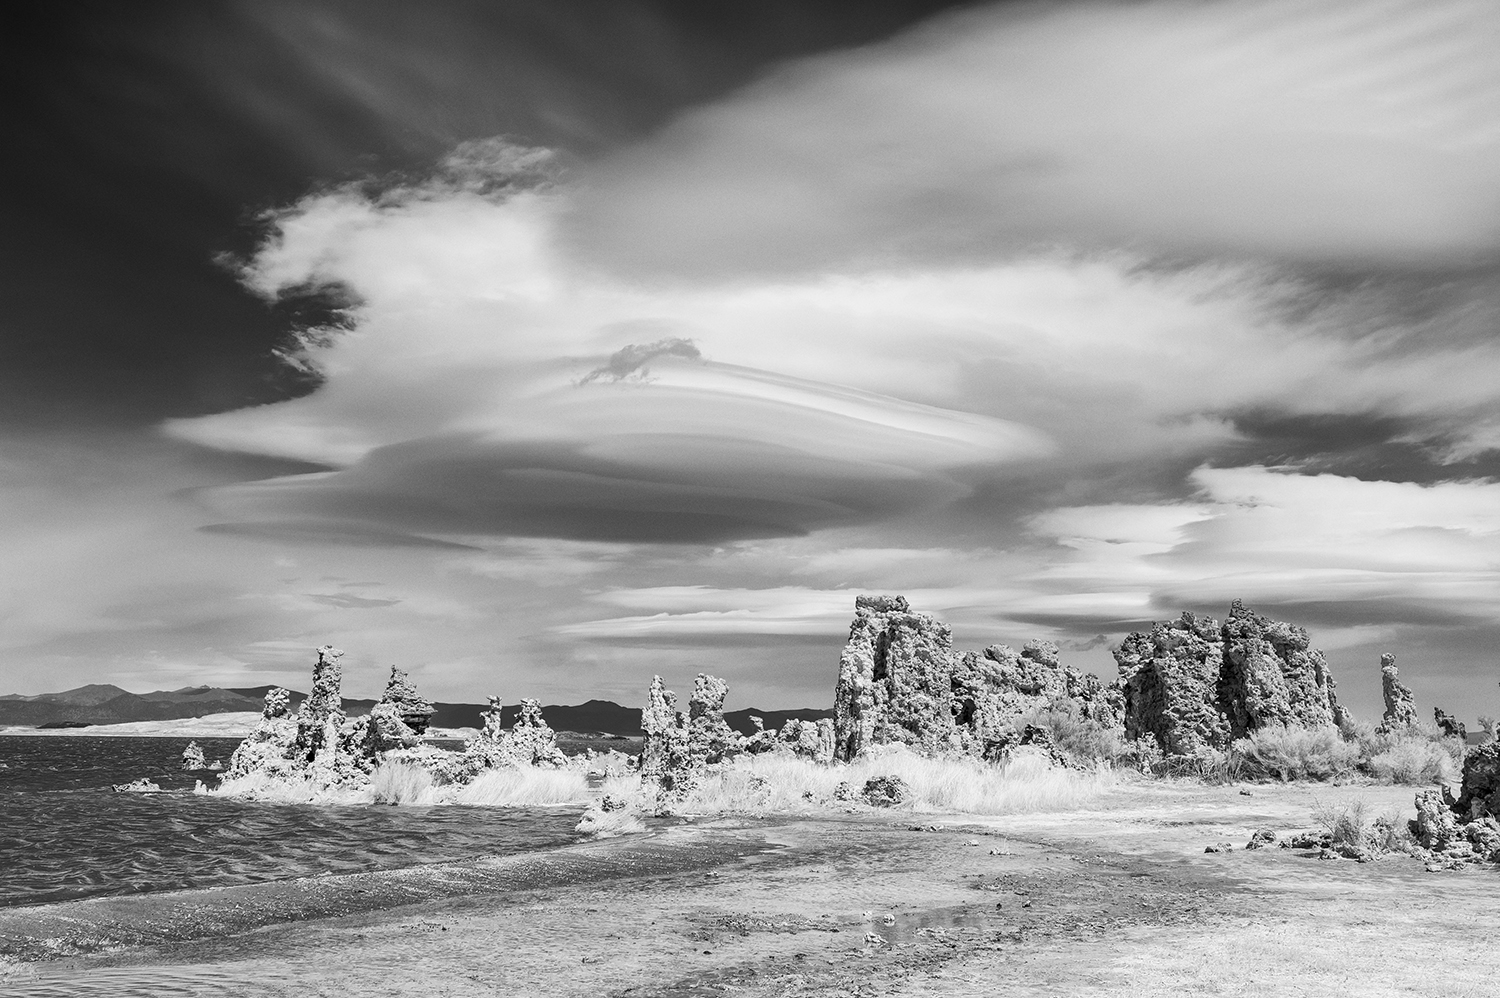 East Sierra landscape images from Mono Lake, CaliforniaImage No: 18-007994-BW  Click HERE to Add to Cart